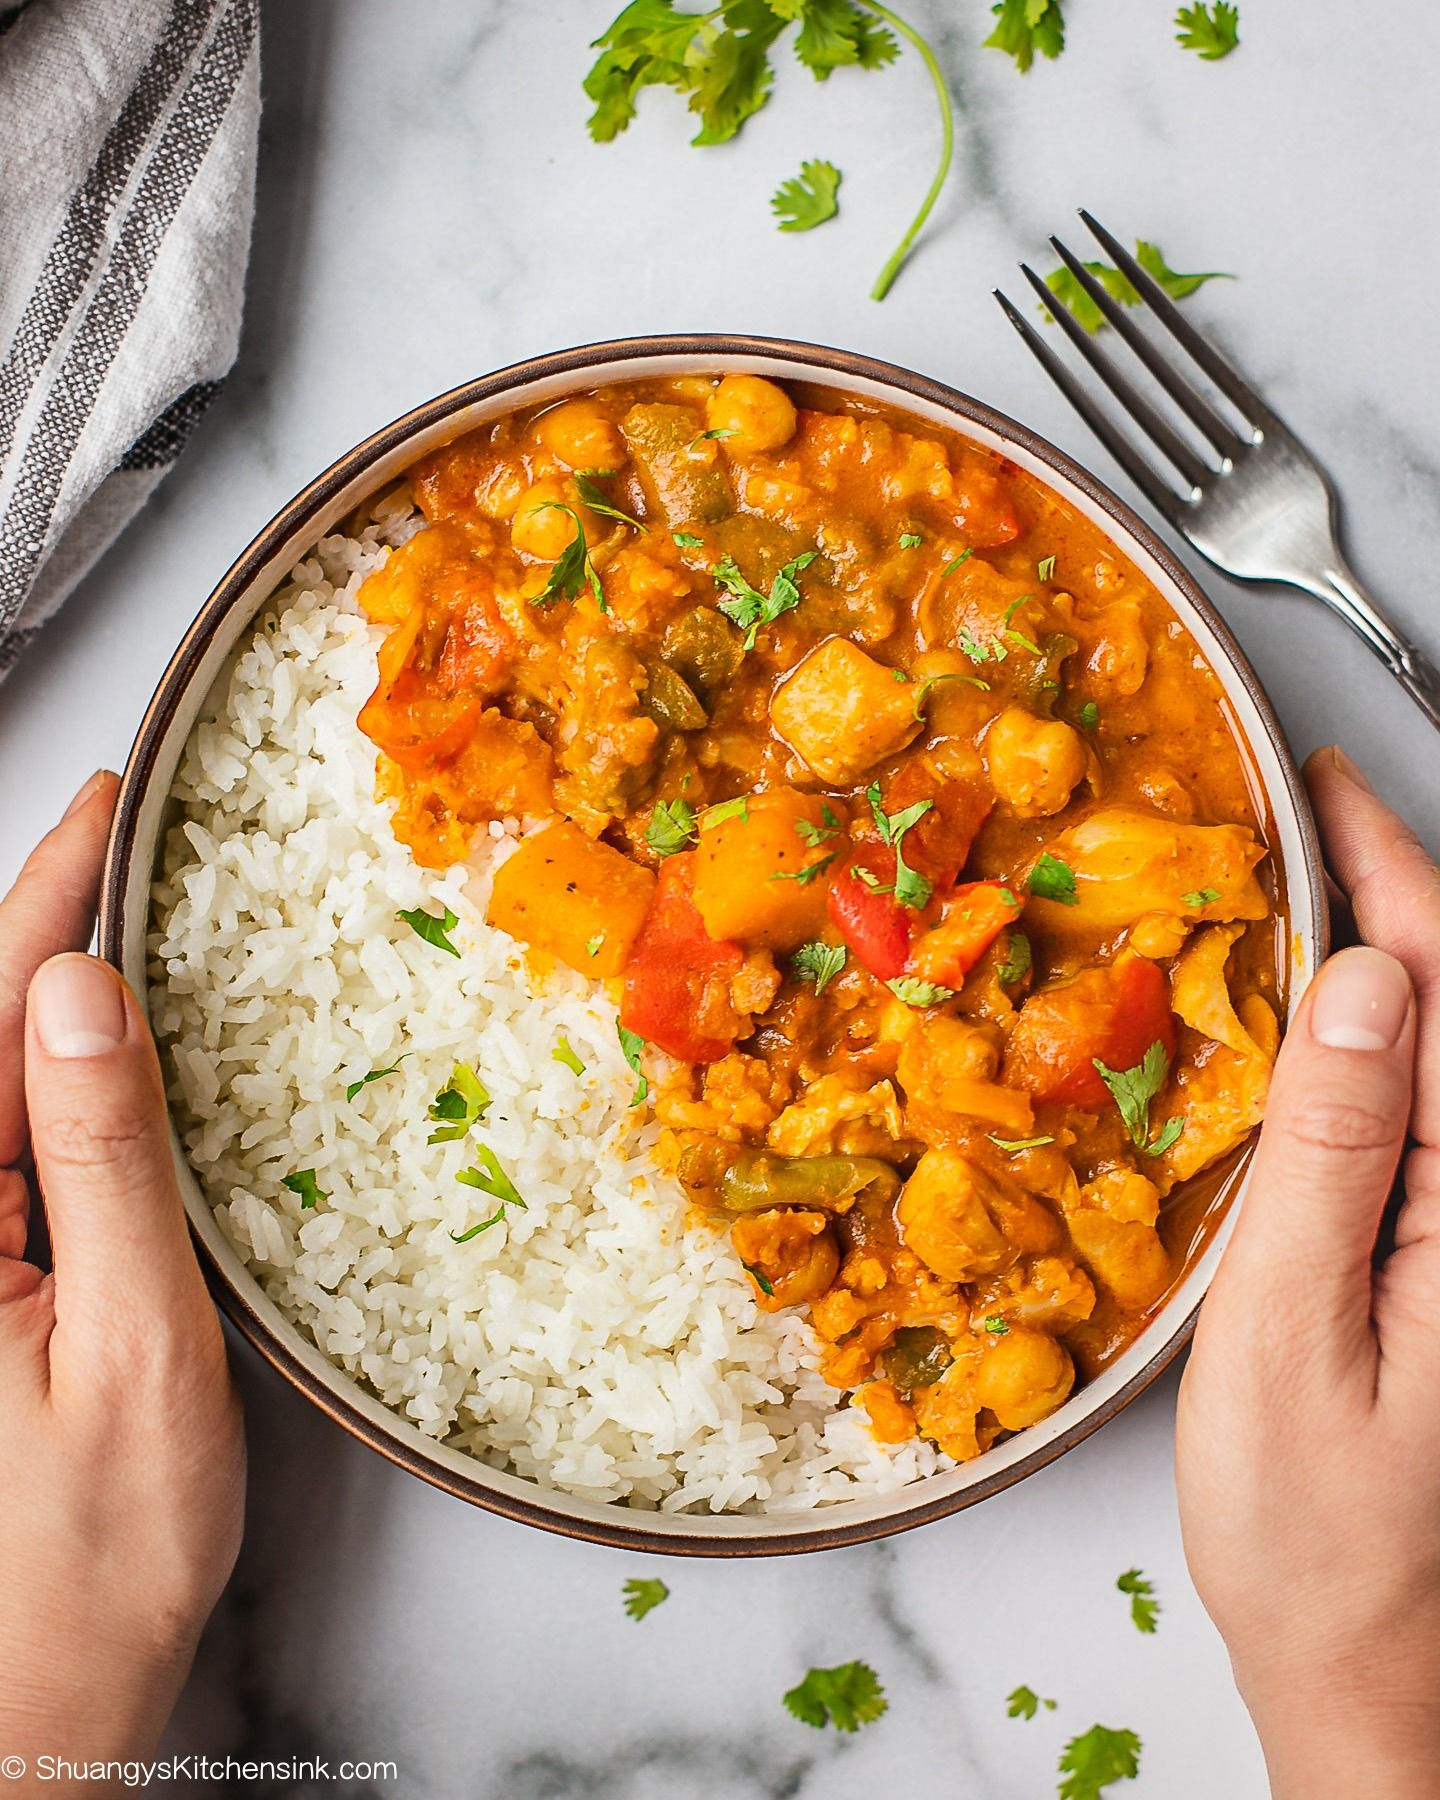 Thai Pumpkin Curry Whole30 Vegan Option Shuangy S Kitchen Sink Recipe Pumpkin Curry Vegan Recipes Healthy Hearty Dish